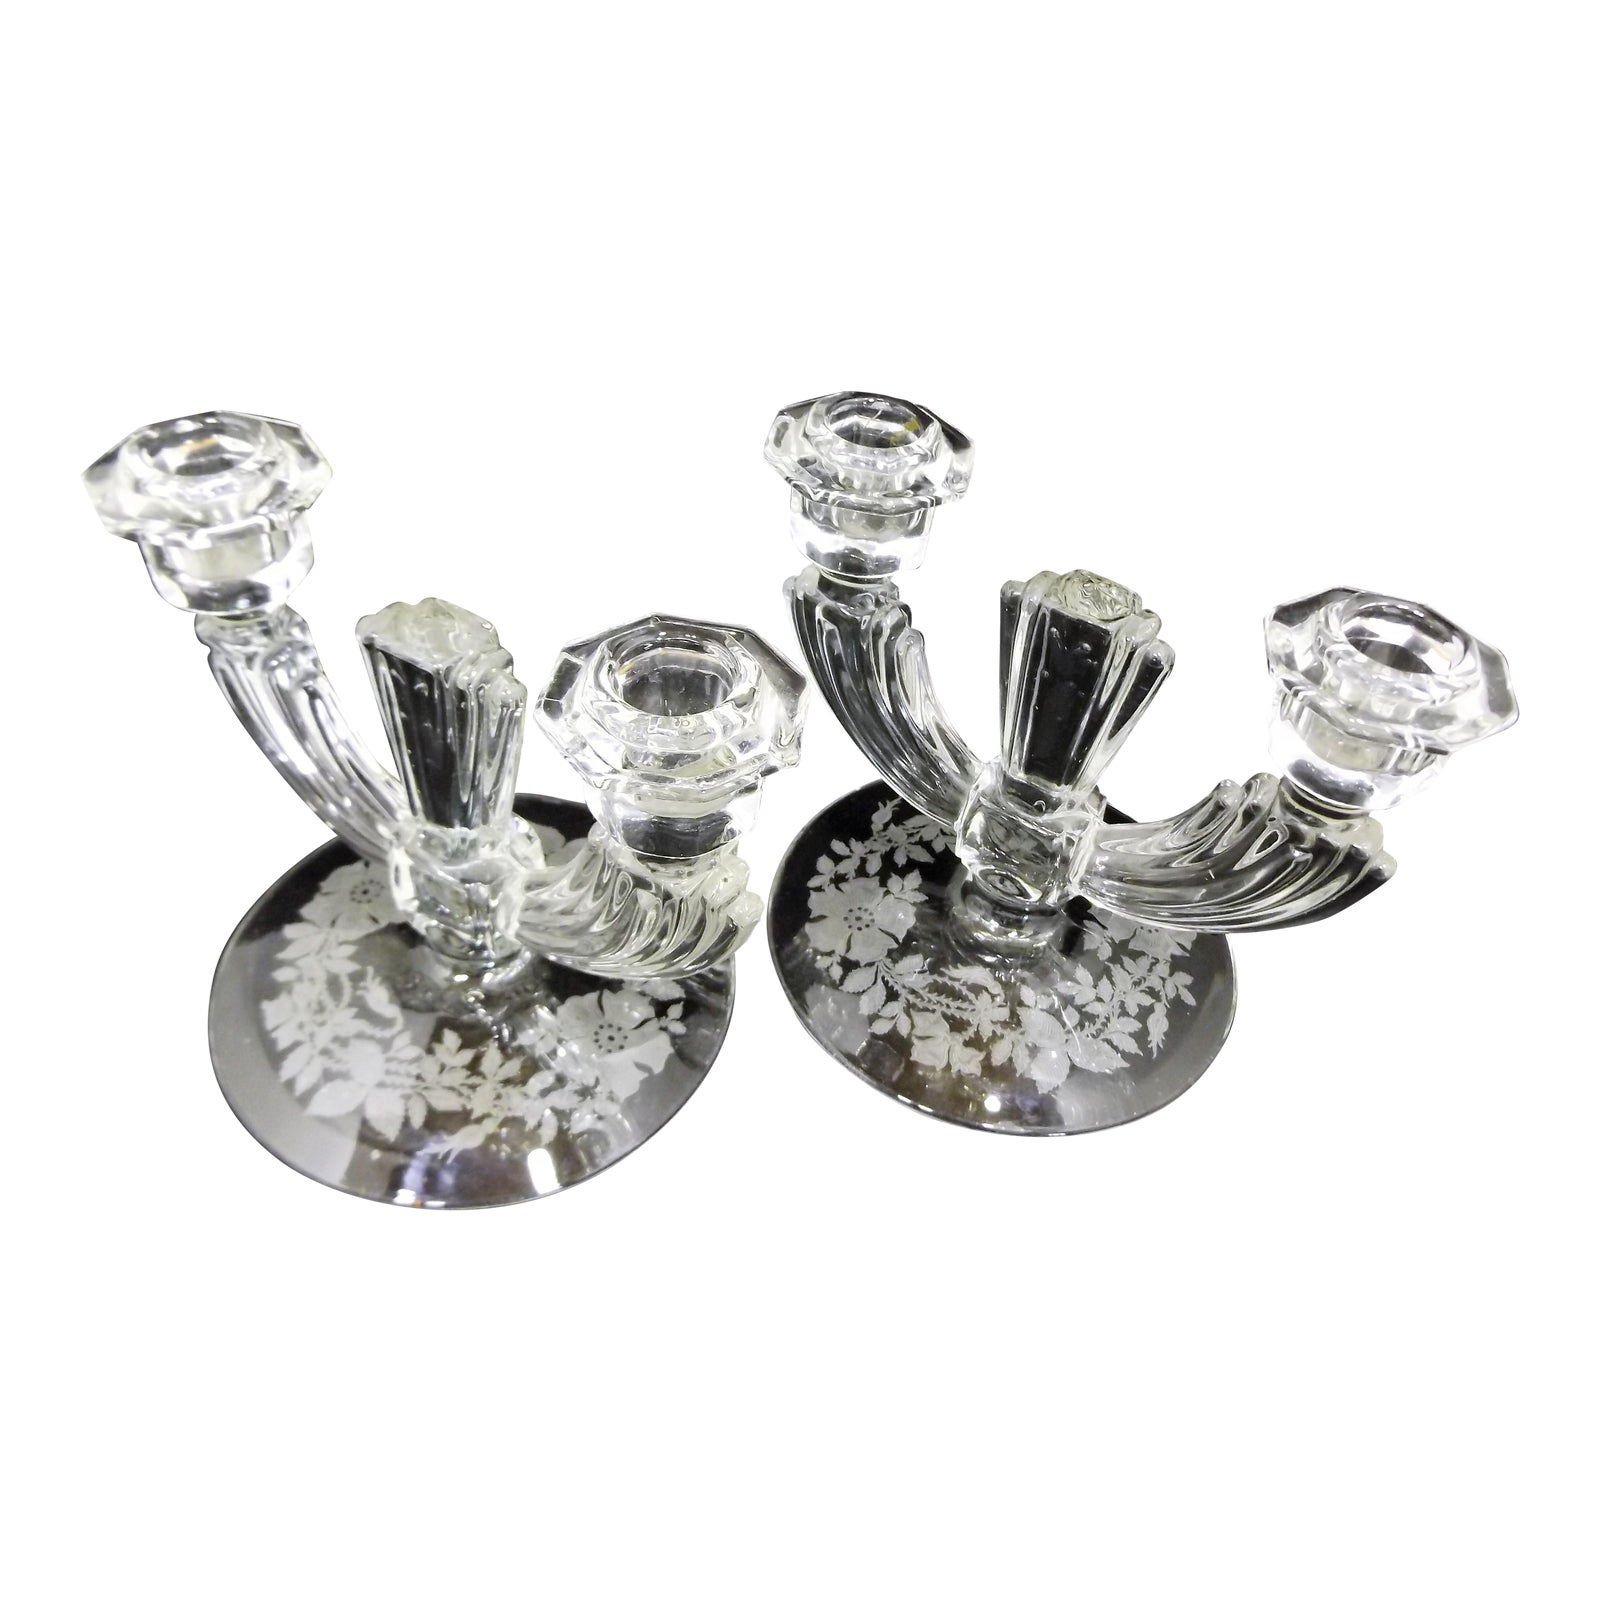 Vintage Art Deco Crystal Glass 2 Stick Candle Holders By